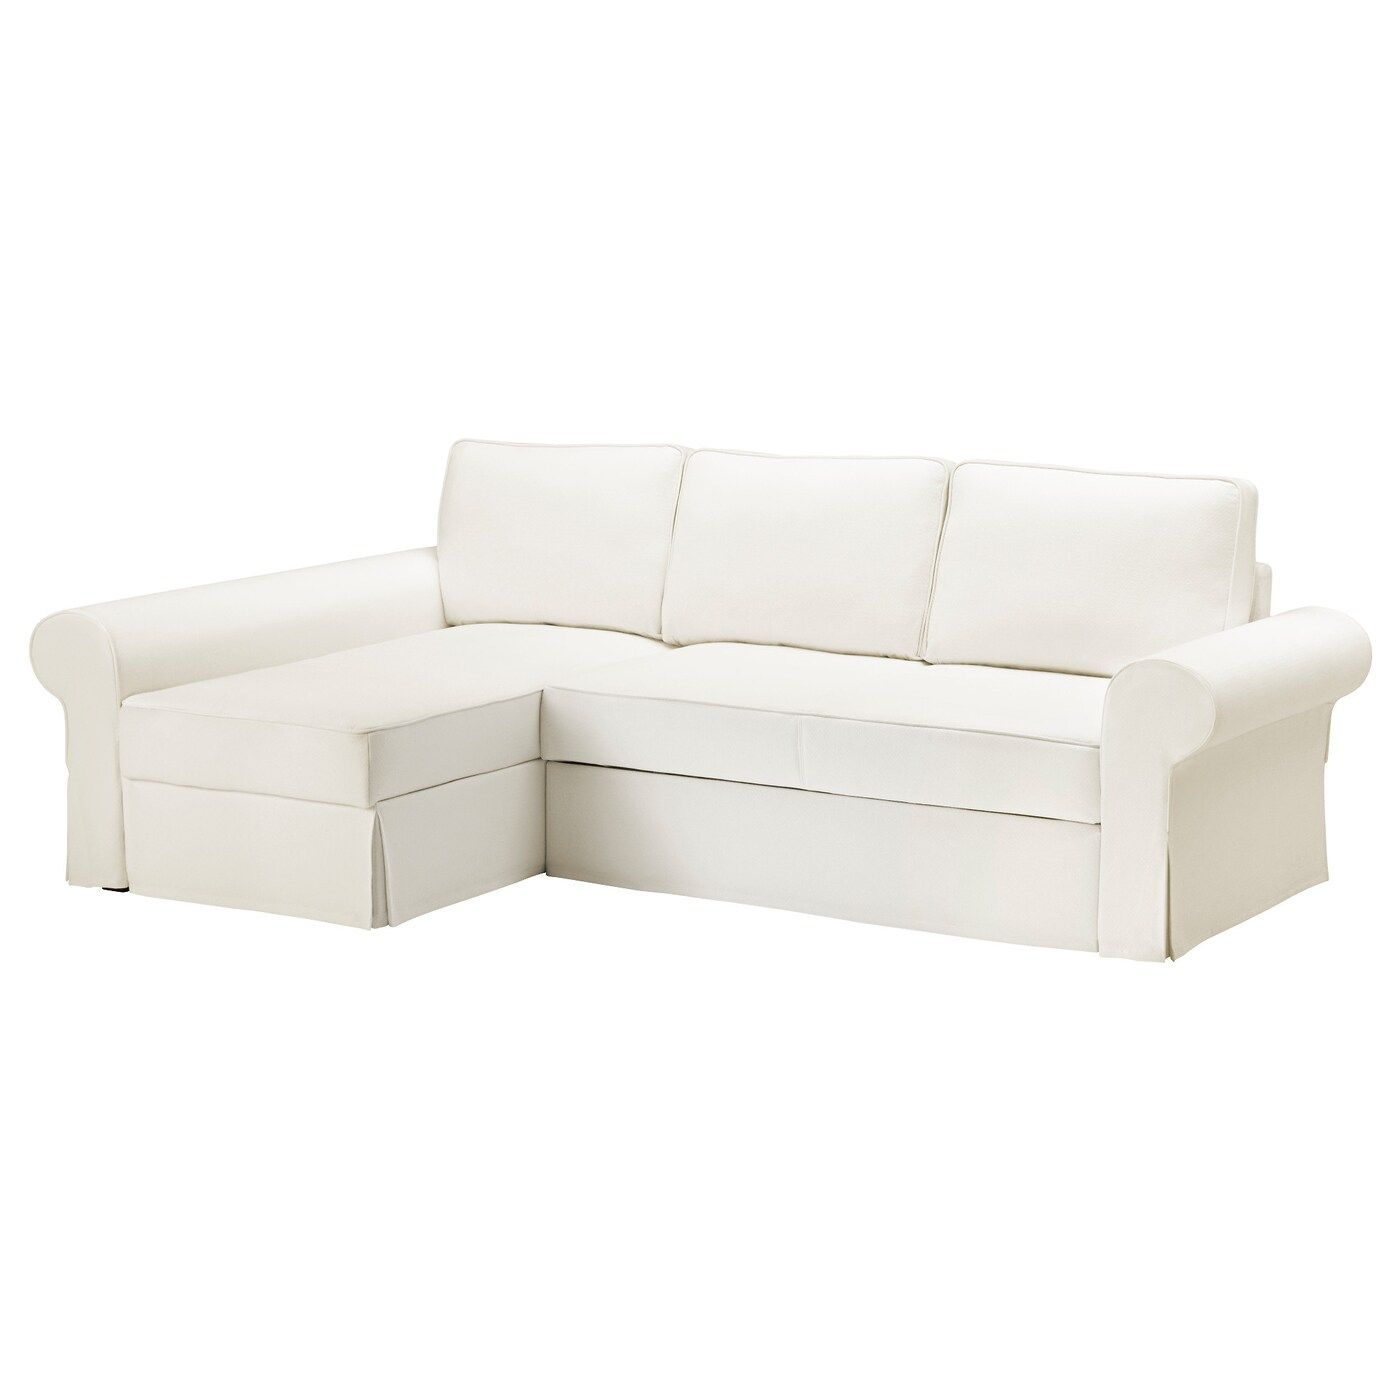 Ikea Chaise Longue Slaapbank.Backabro Hoes Slaapbank Met Chaise Longue In 2020 Sofa Bed With